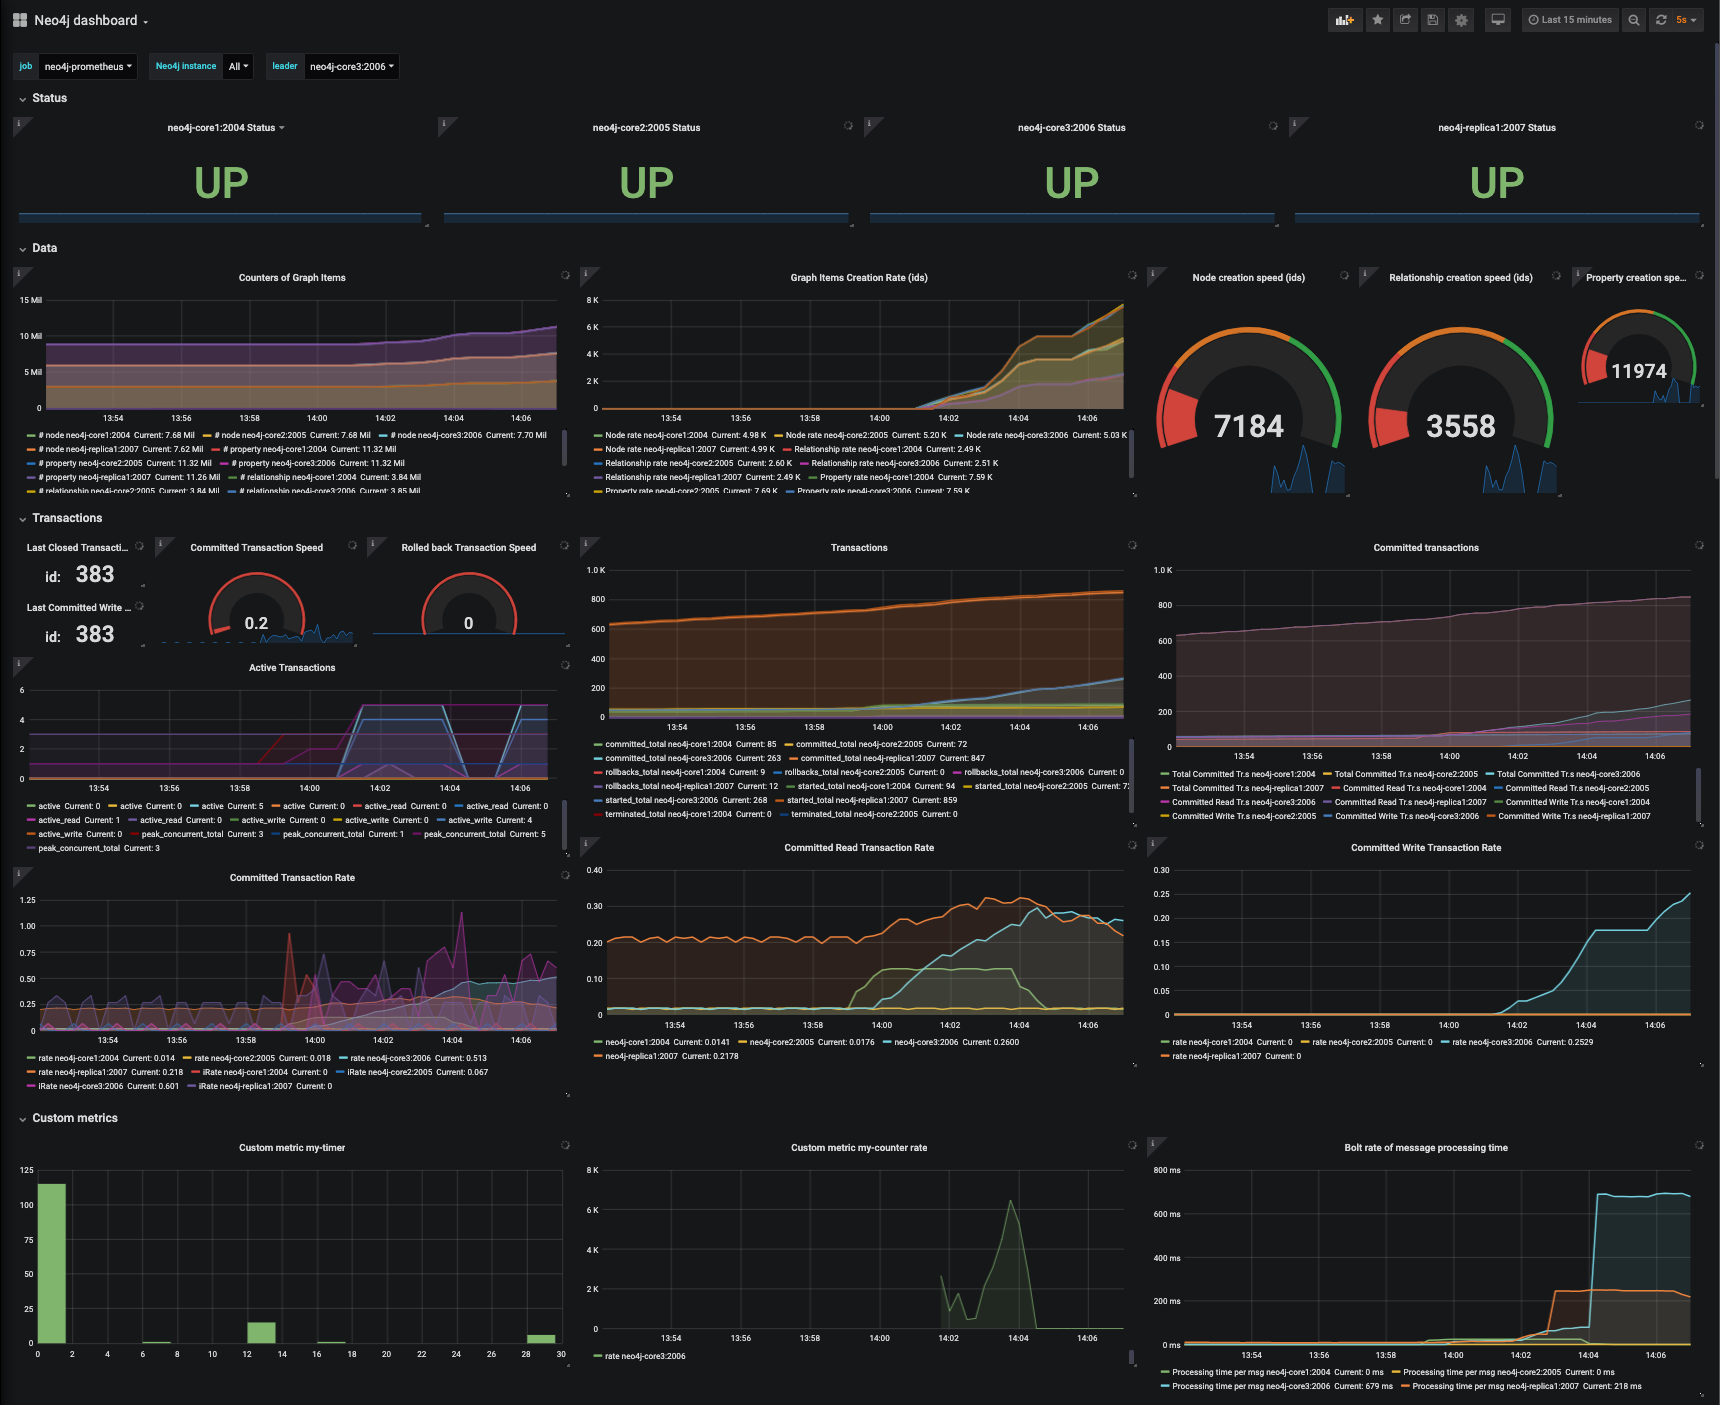 Monitoring Neo4j and Procedures with Prometheus and Grafana